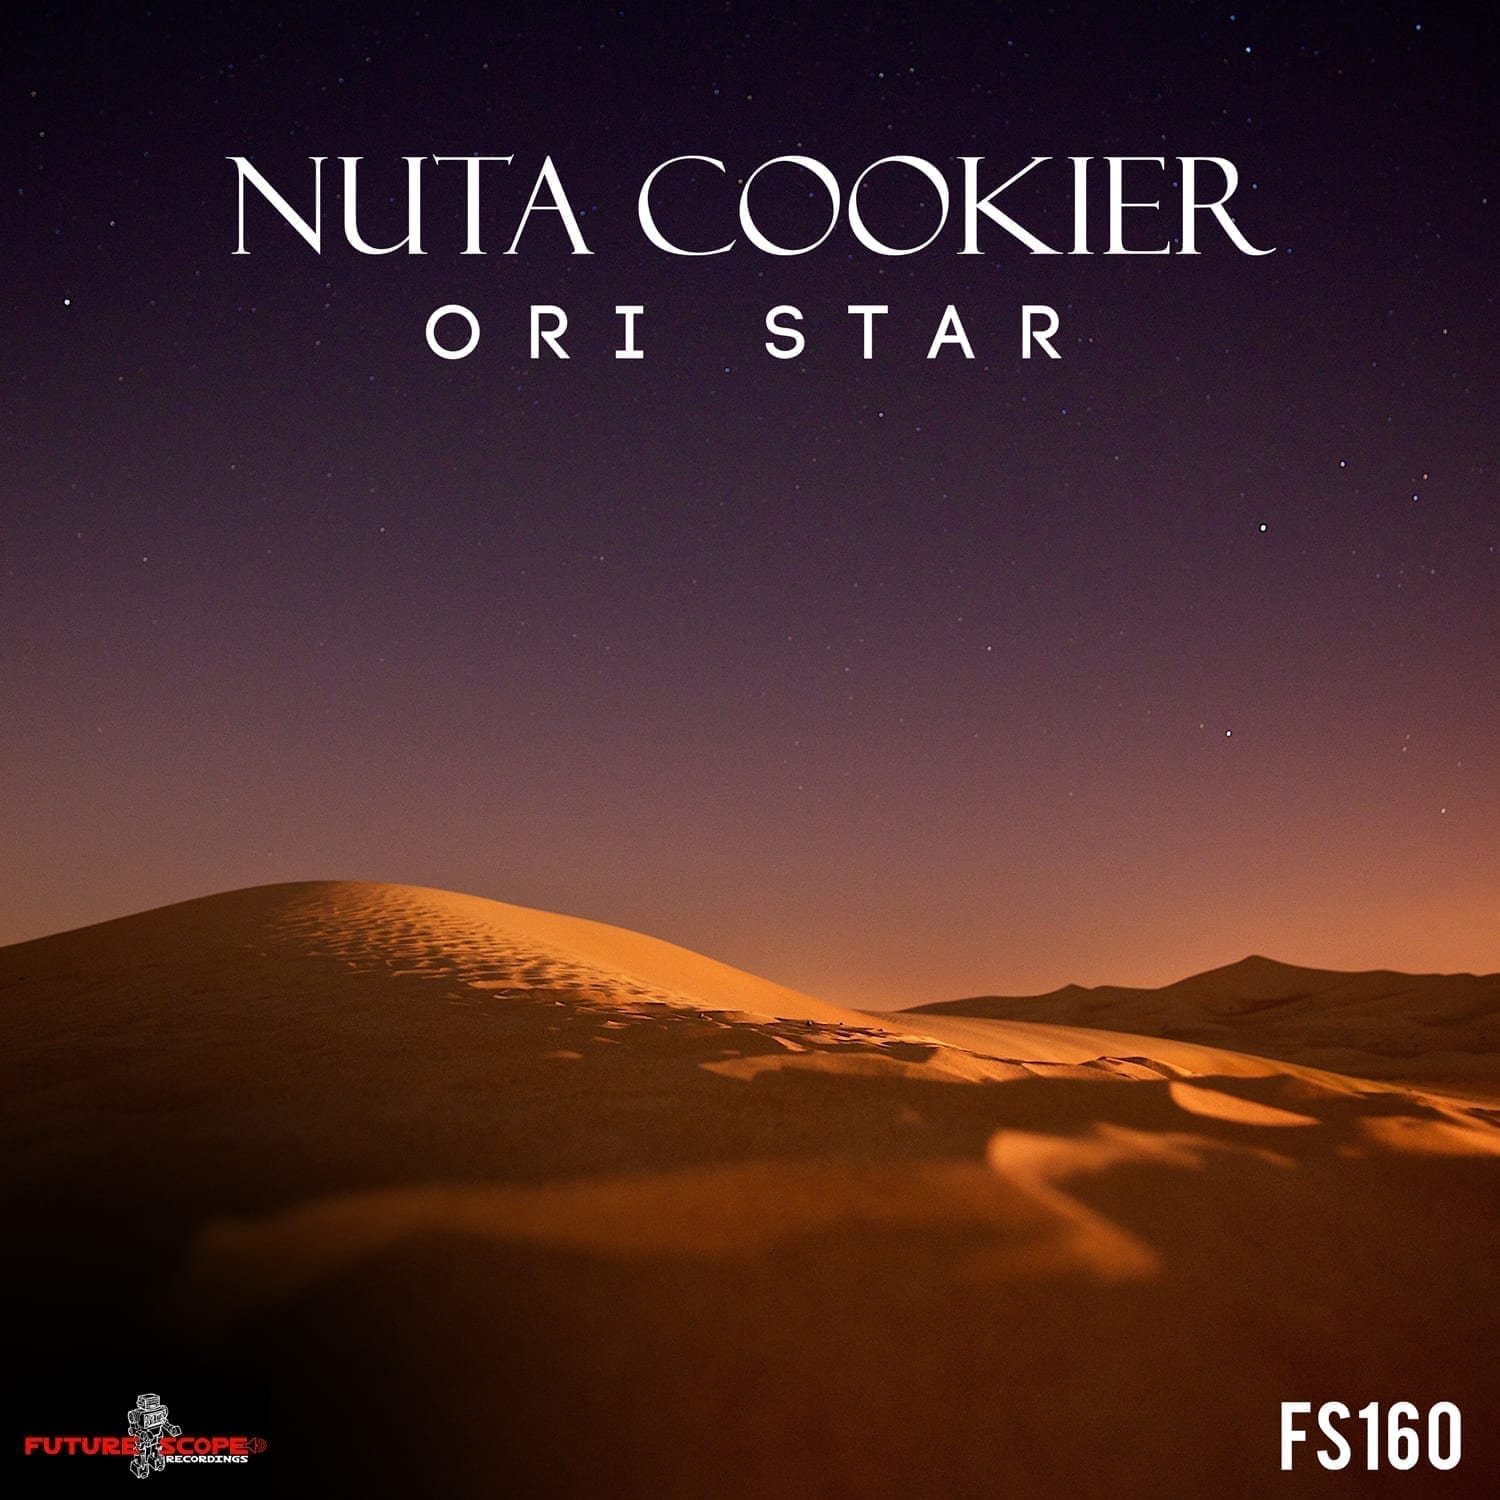 """The musician and dj Nuta Cookier is back with a new techno release titled """"Ori Star"""""""